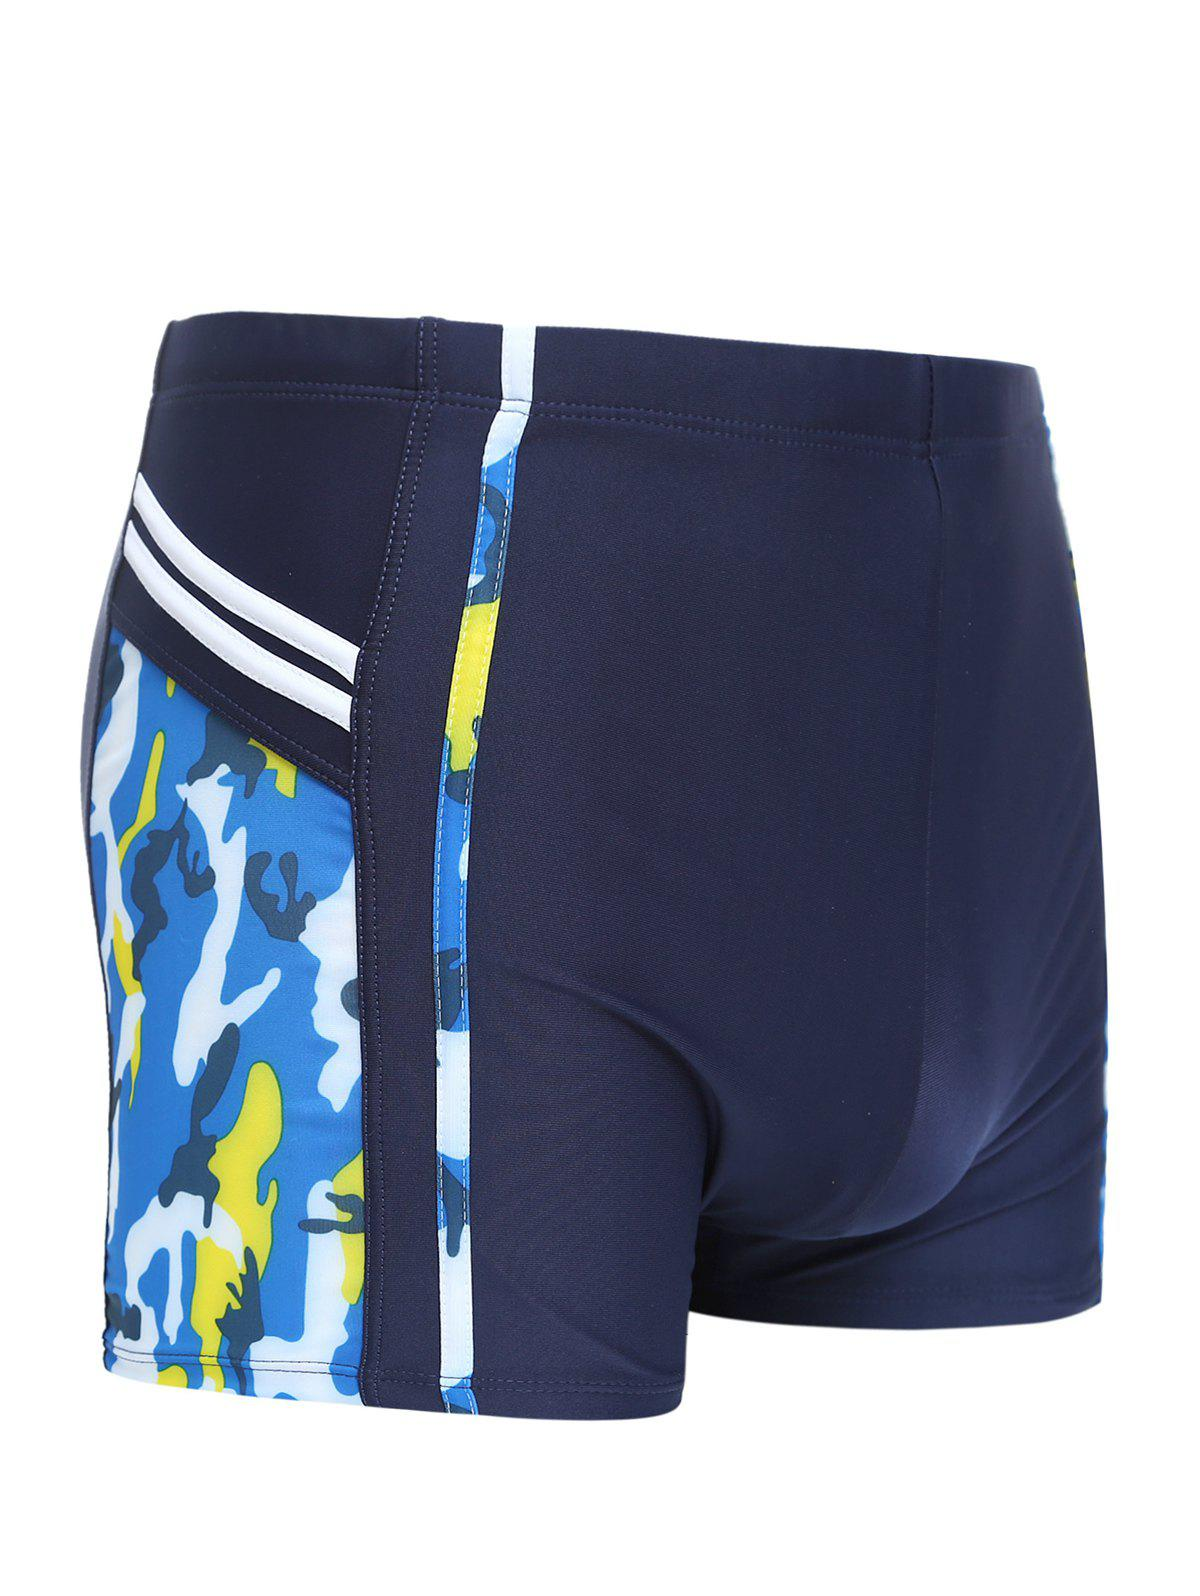 Men's Striped Printed Swimming Trunks